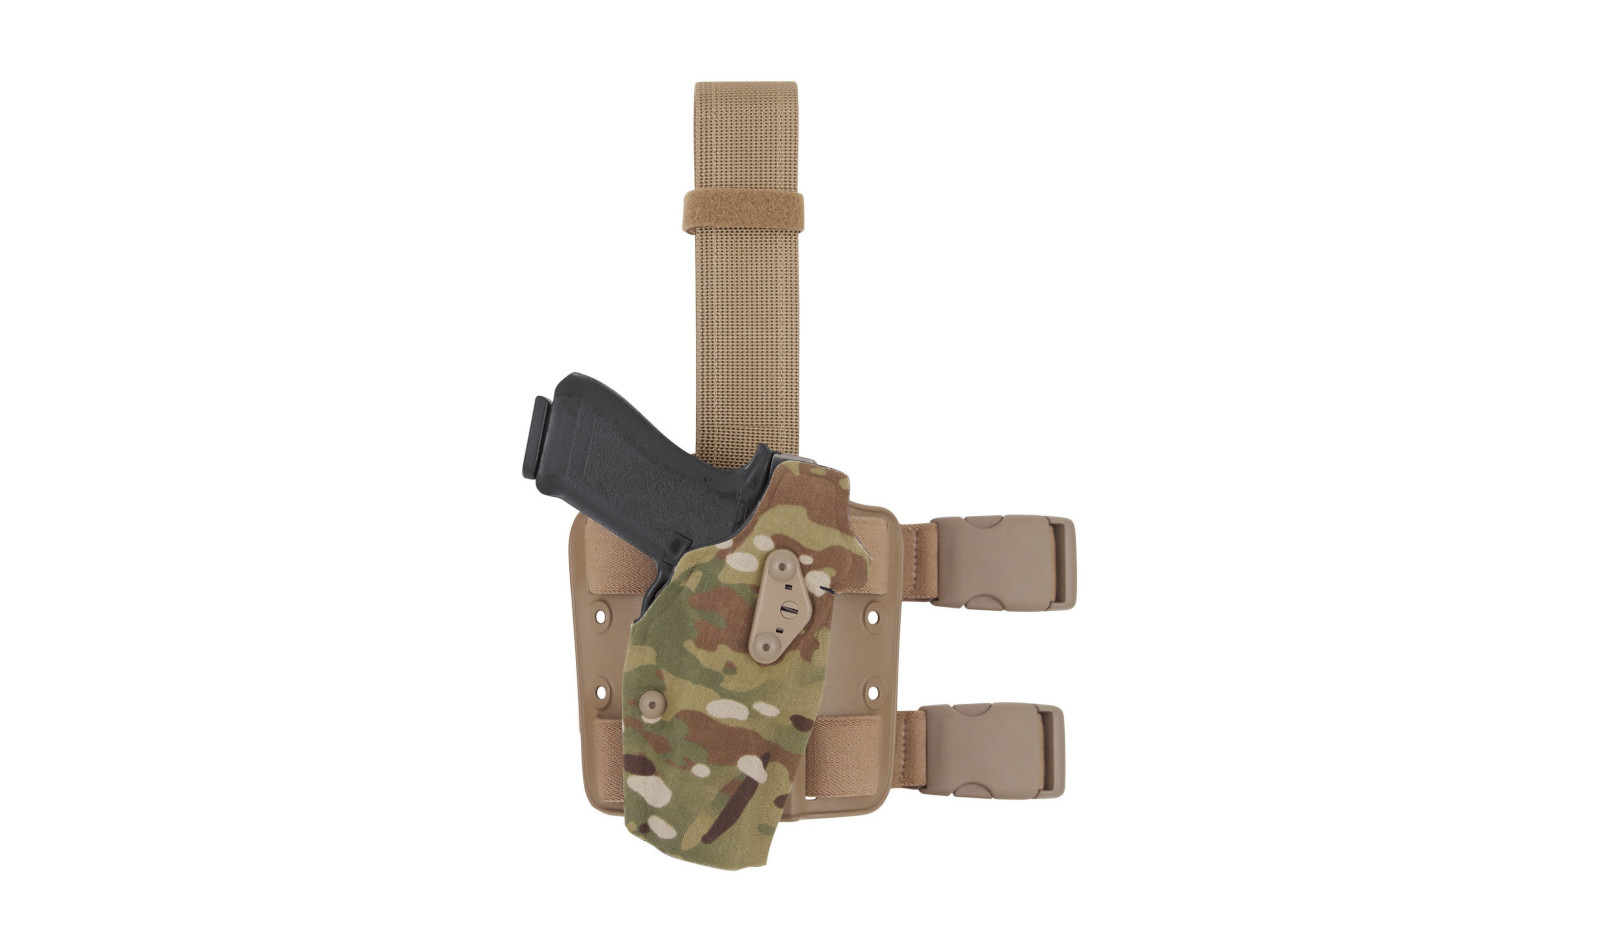 Safariland 6354DO ALS Optic Tactical Holster For Red Dot Optic